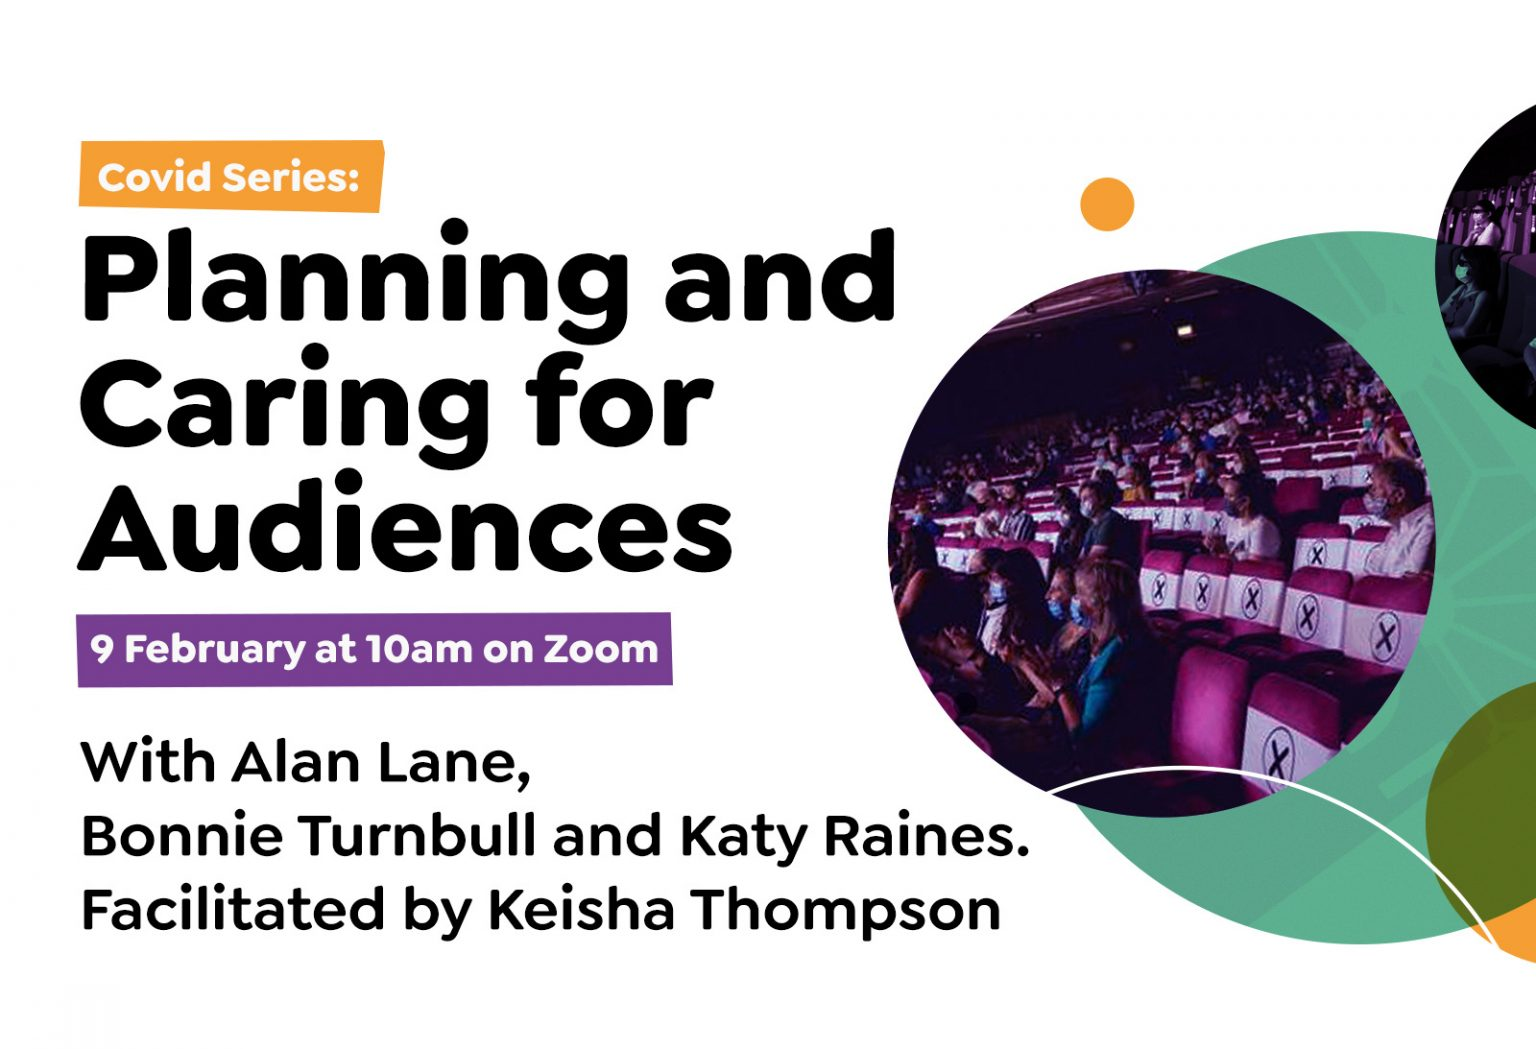 Planning and Caring for Audiences